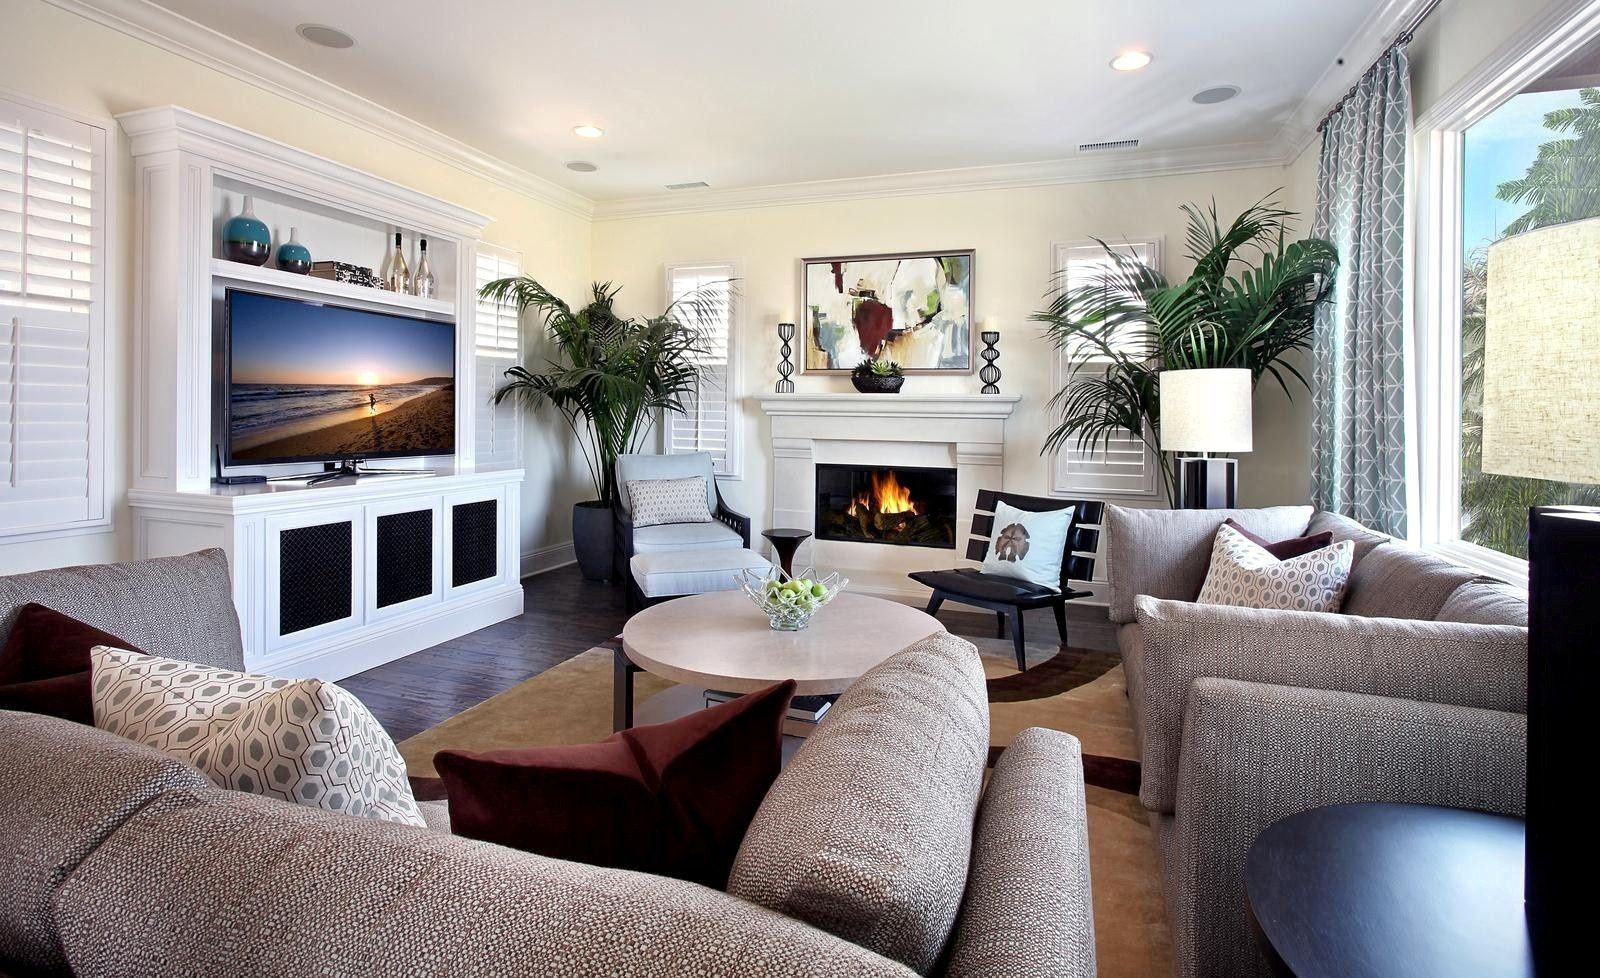 Remarkable How To Arrange Living Room Furniture With ...